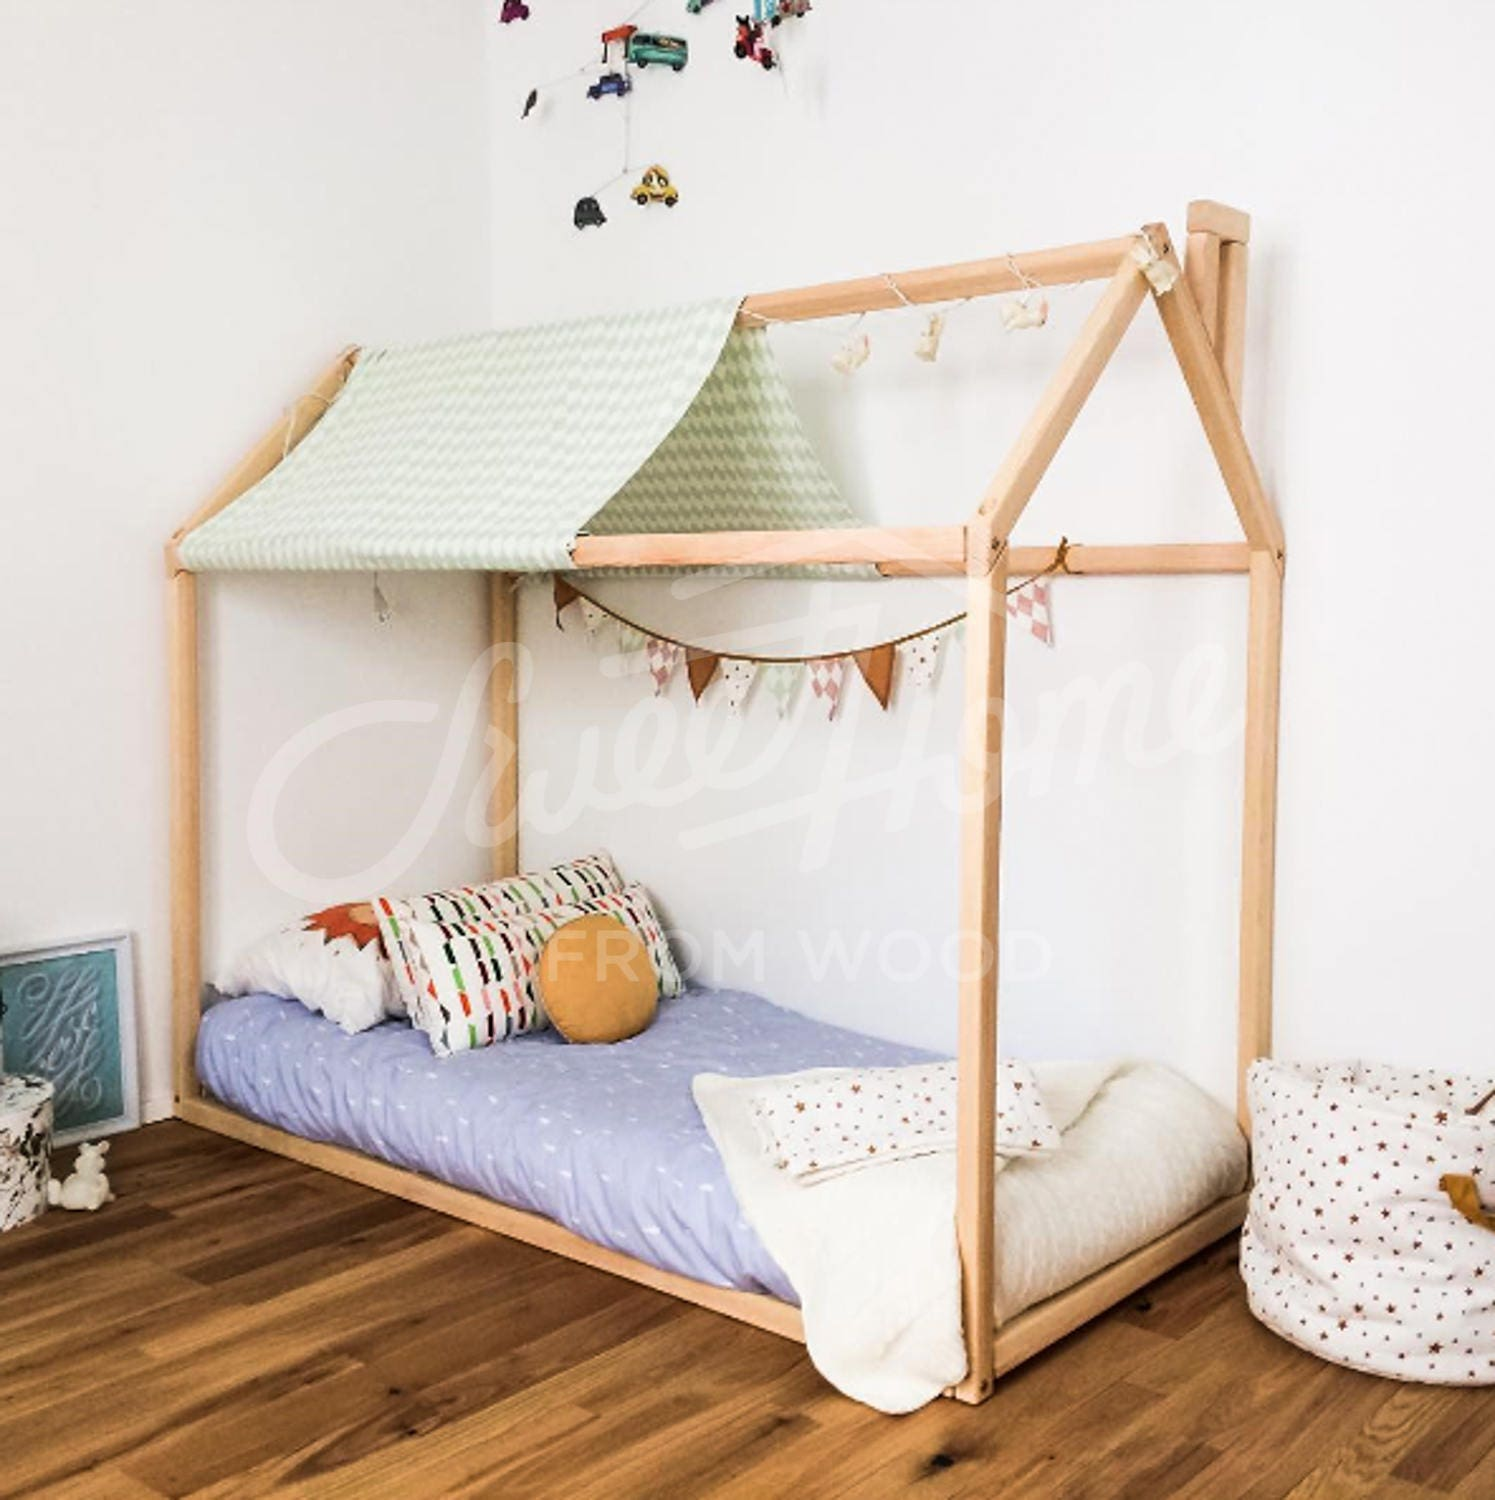 House bed 160x70 80 90cm montessori bed house play house for Chambre montessori